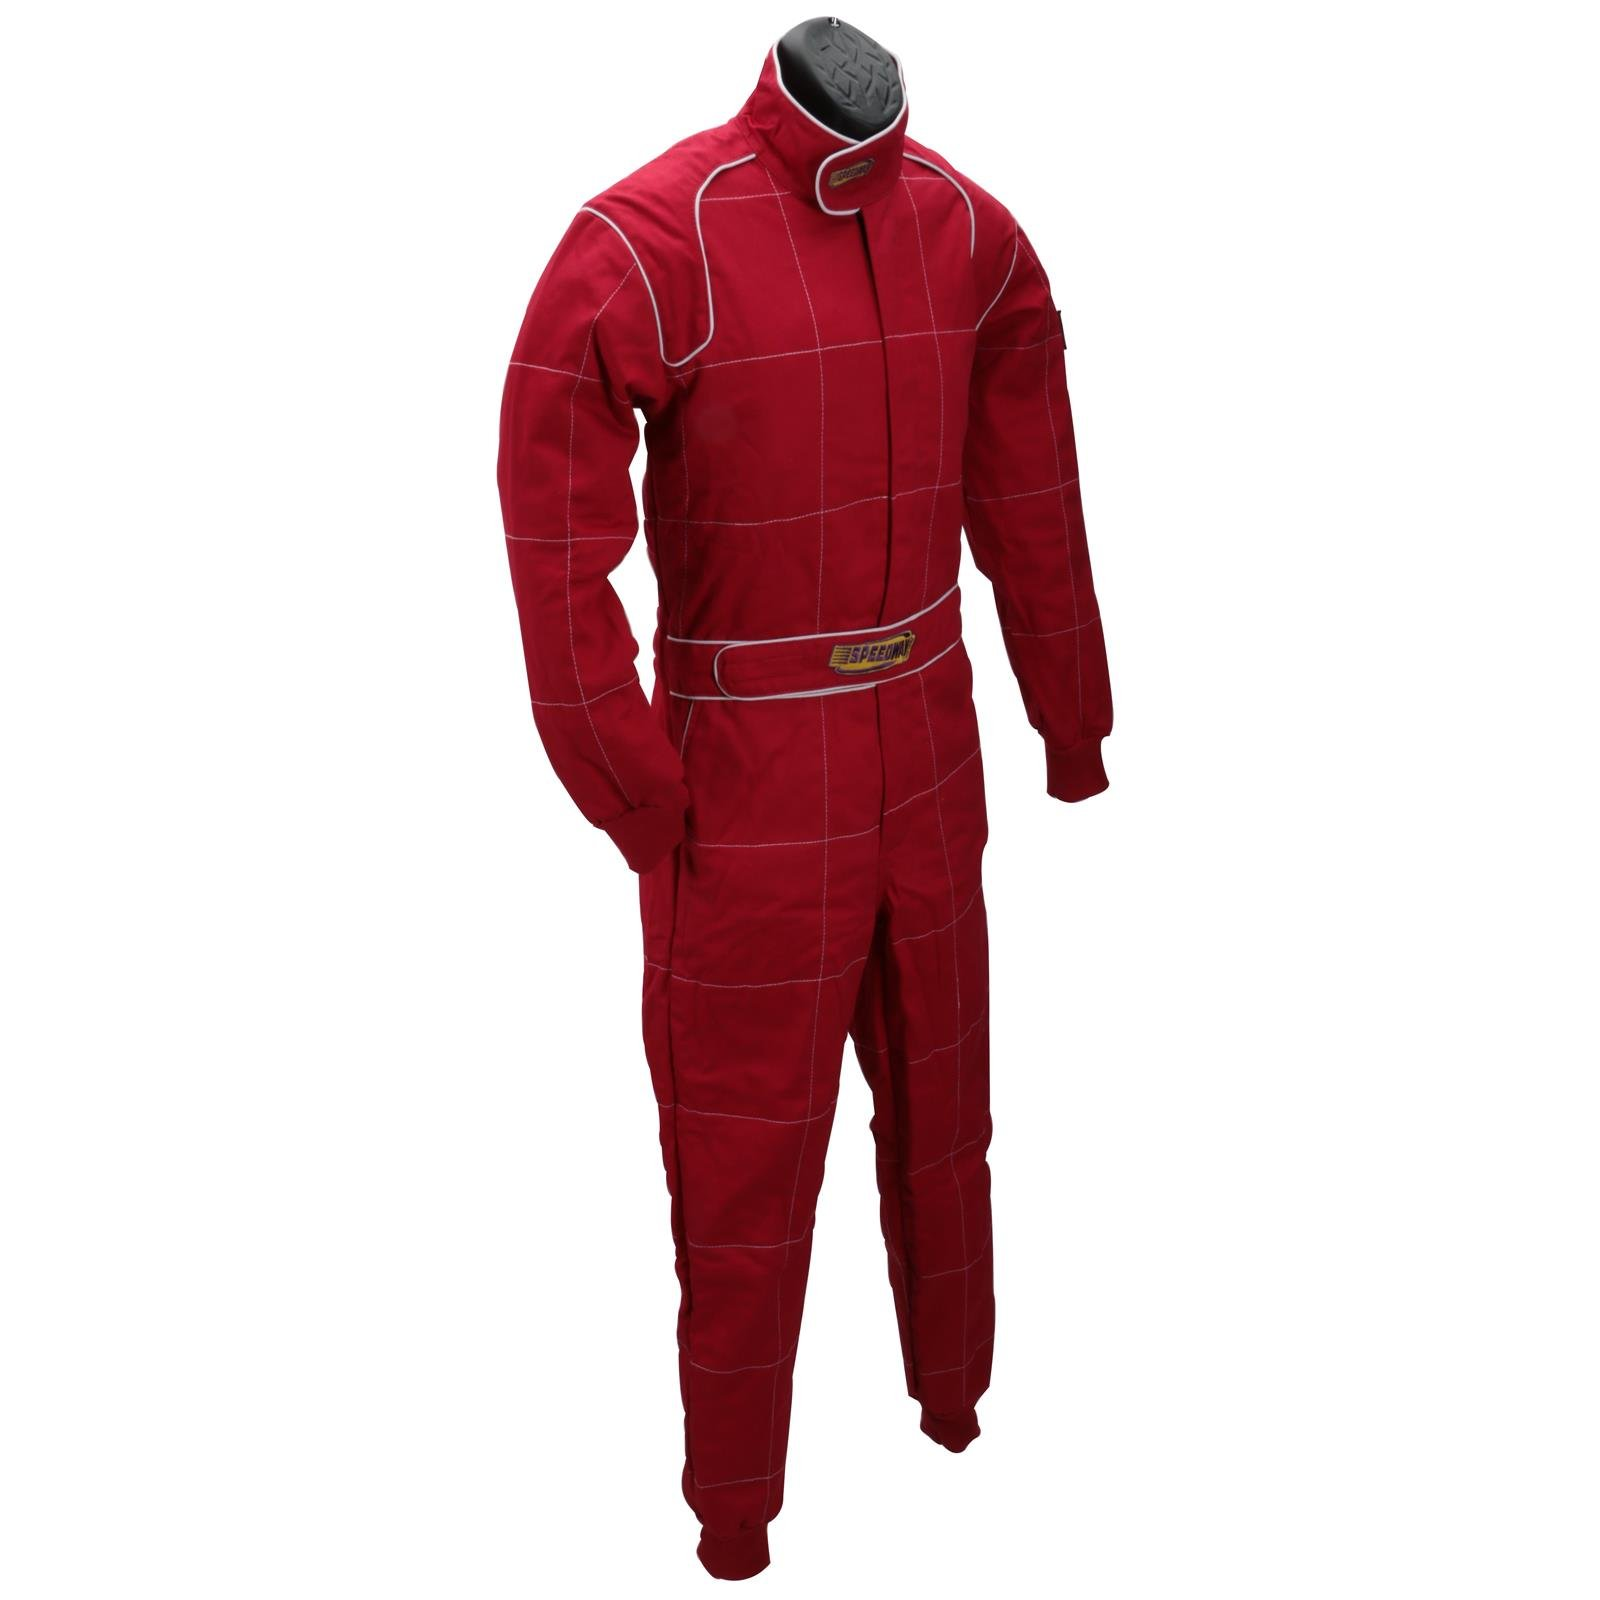 Black 2 Layer Racing Suit-One Piece-SFI-5 Rated, Medium by Speedway Motors